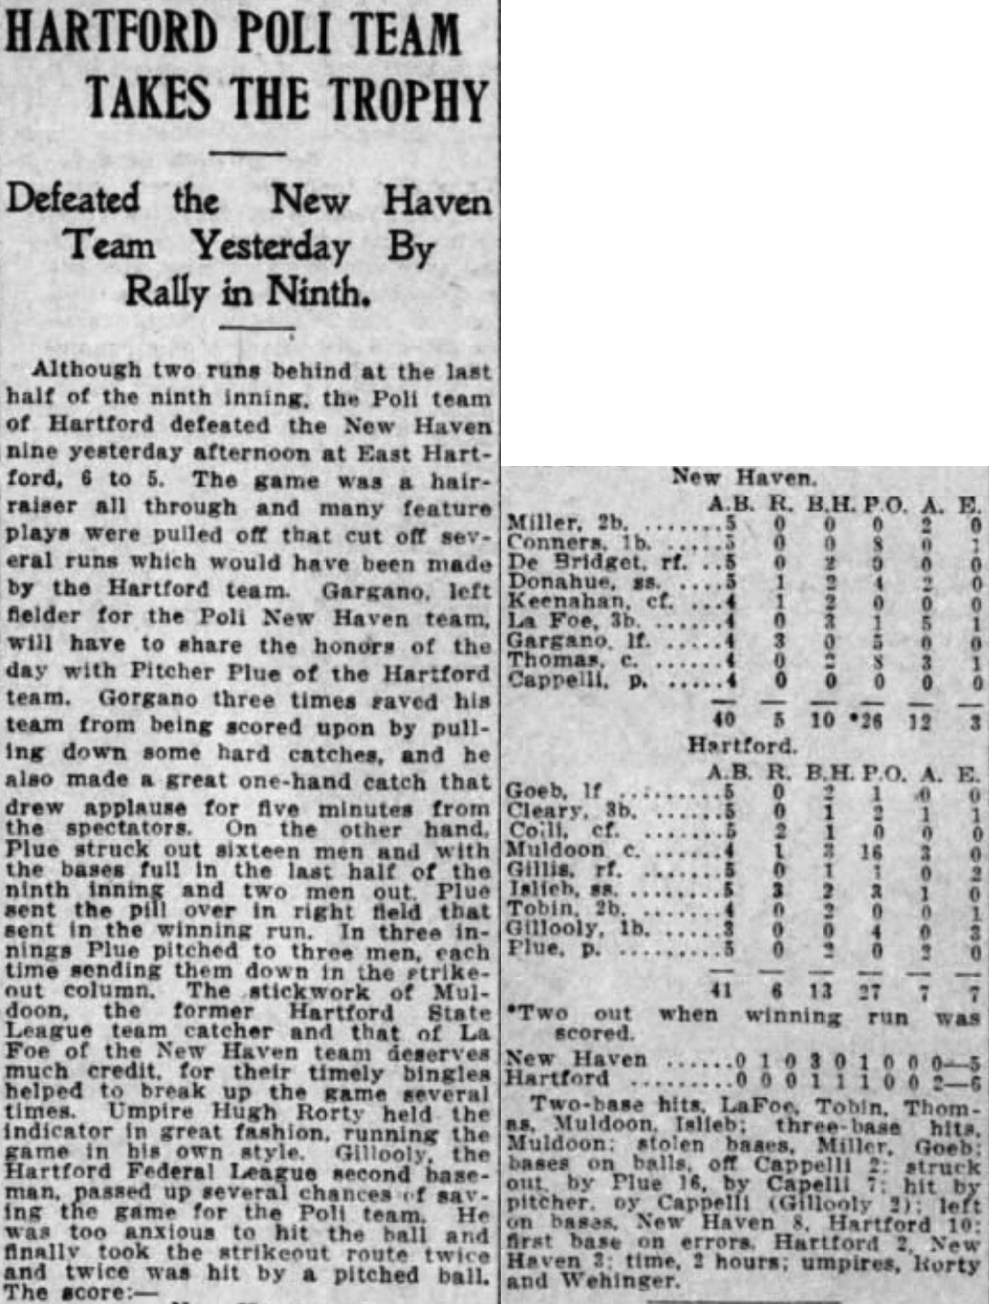 Hartford Courant excerpt from September 6, 1915.